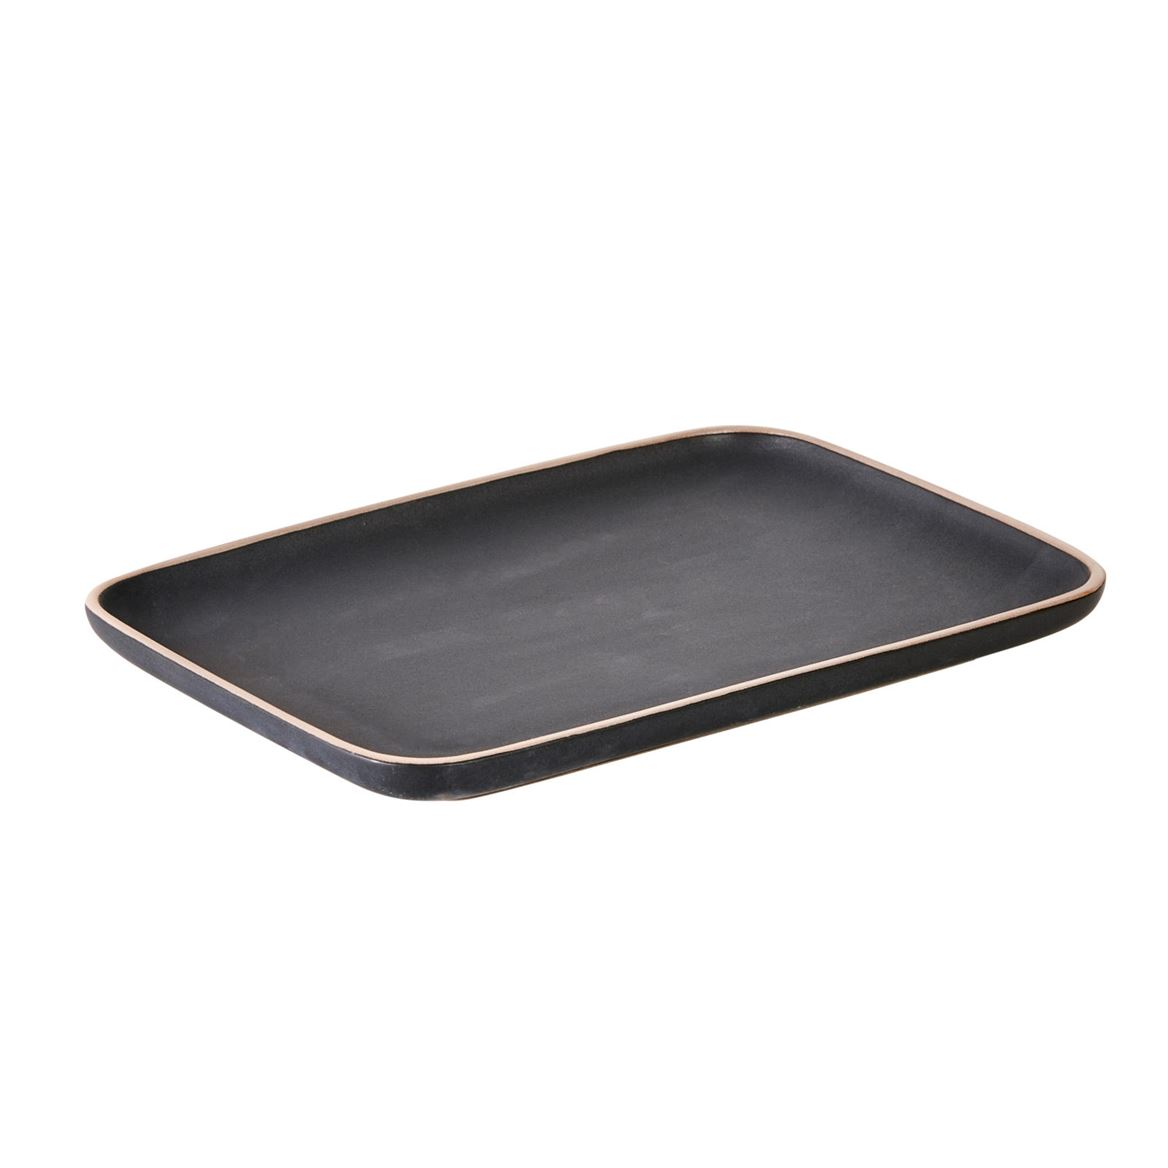 ELEMENTS Plato negro An. 15 x L 21 cm_elements-plato-negro-an--15-x-l-21-cm